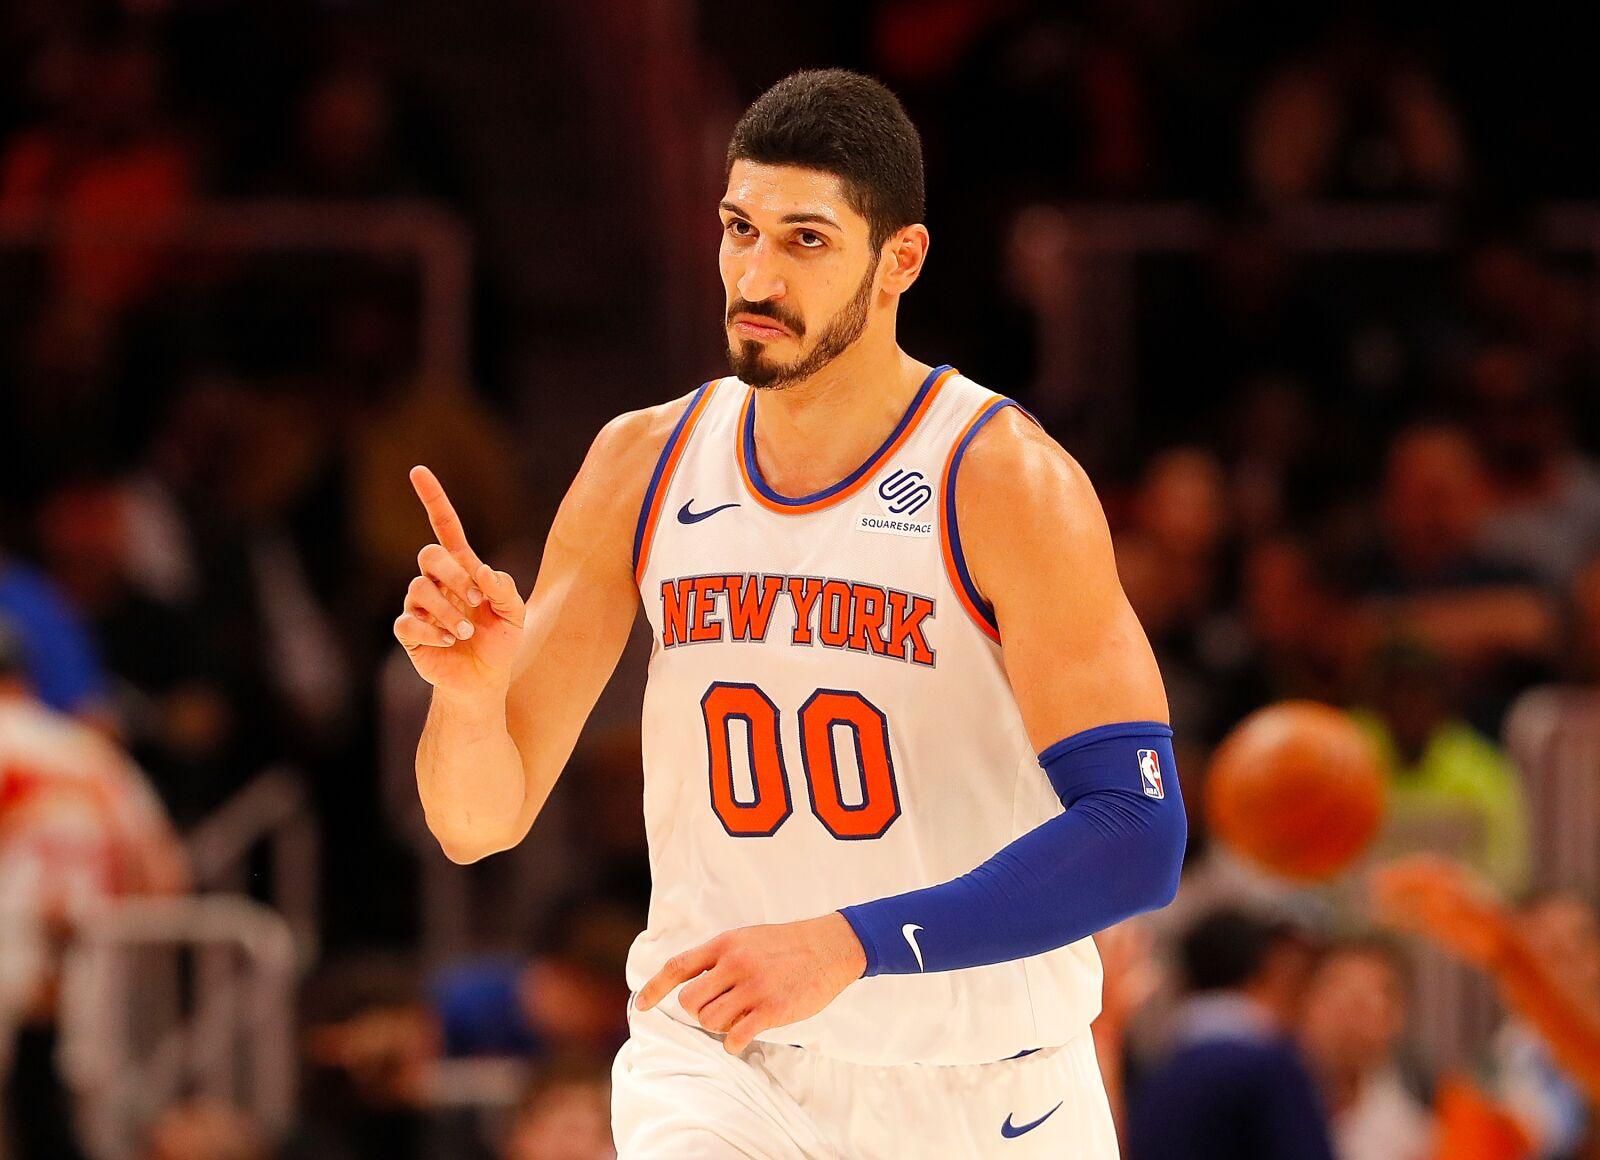 New York Knicks: New York Knicks, New York Rangers, New York Mets Top This